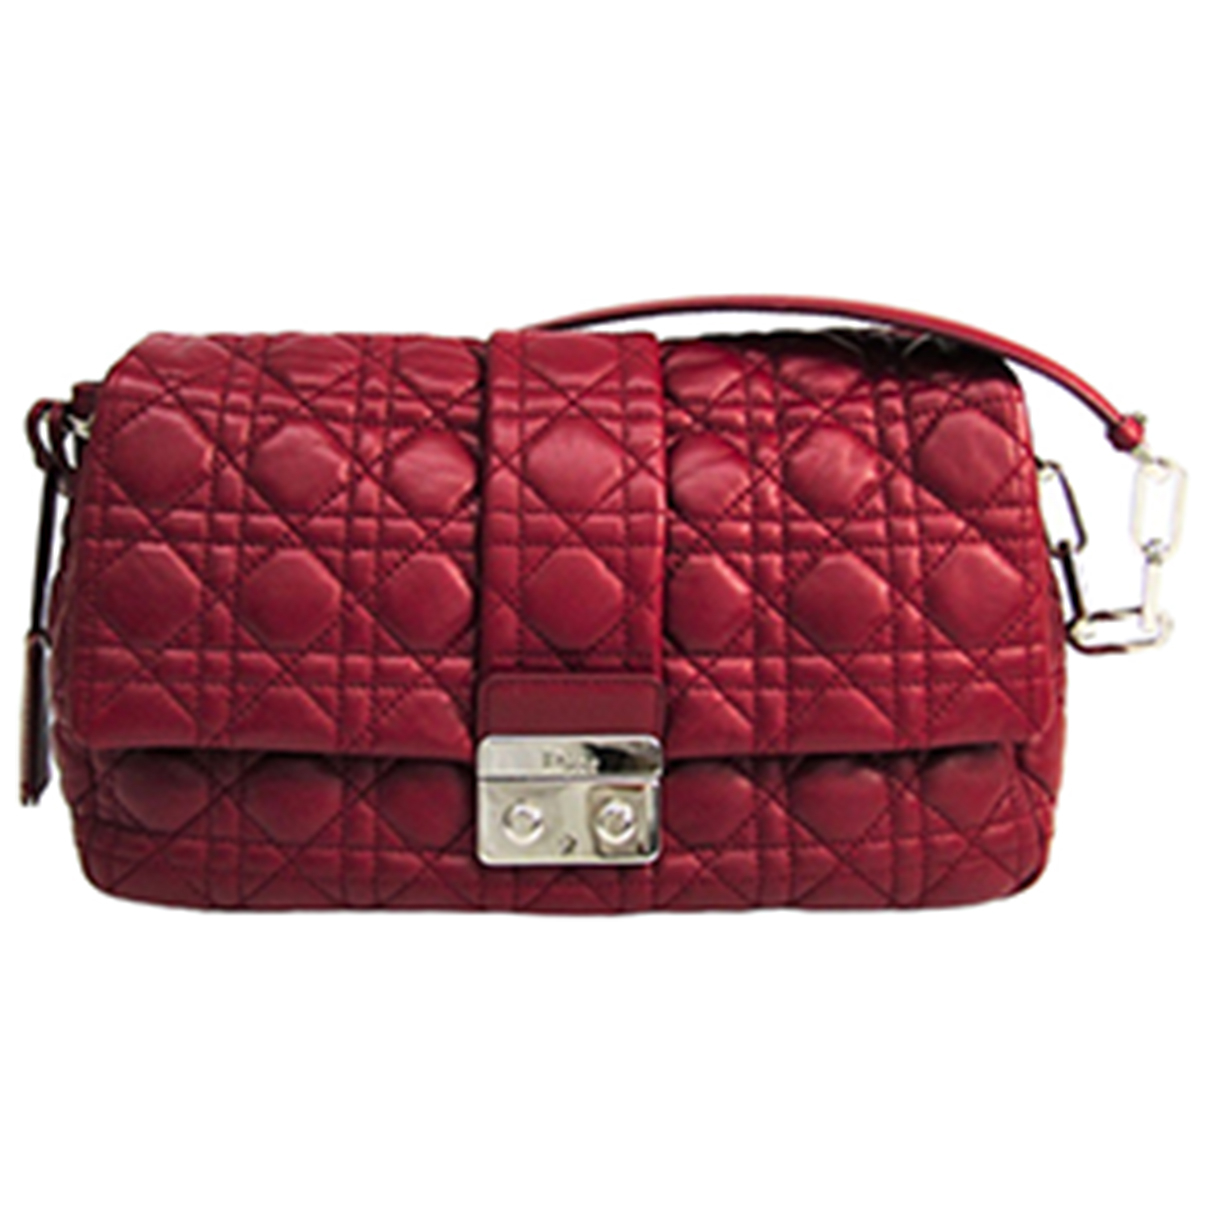 Dior New Lock  Red Leather handbag for Women \N